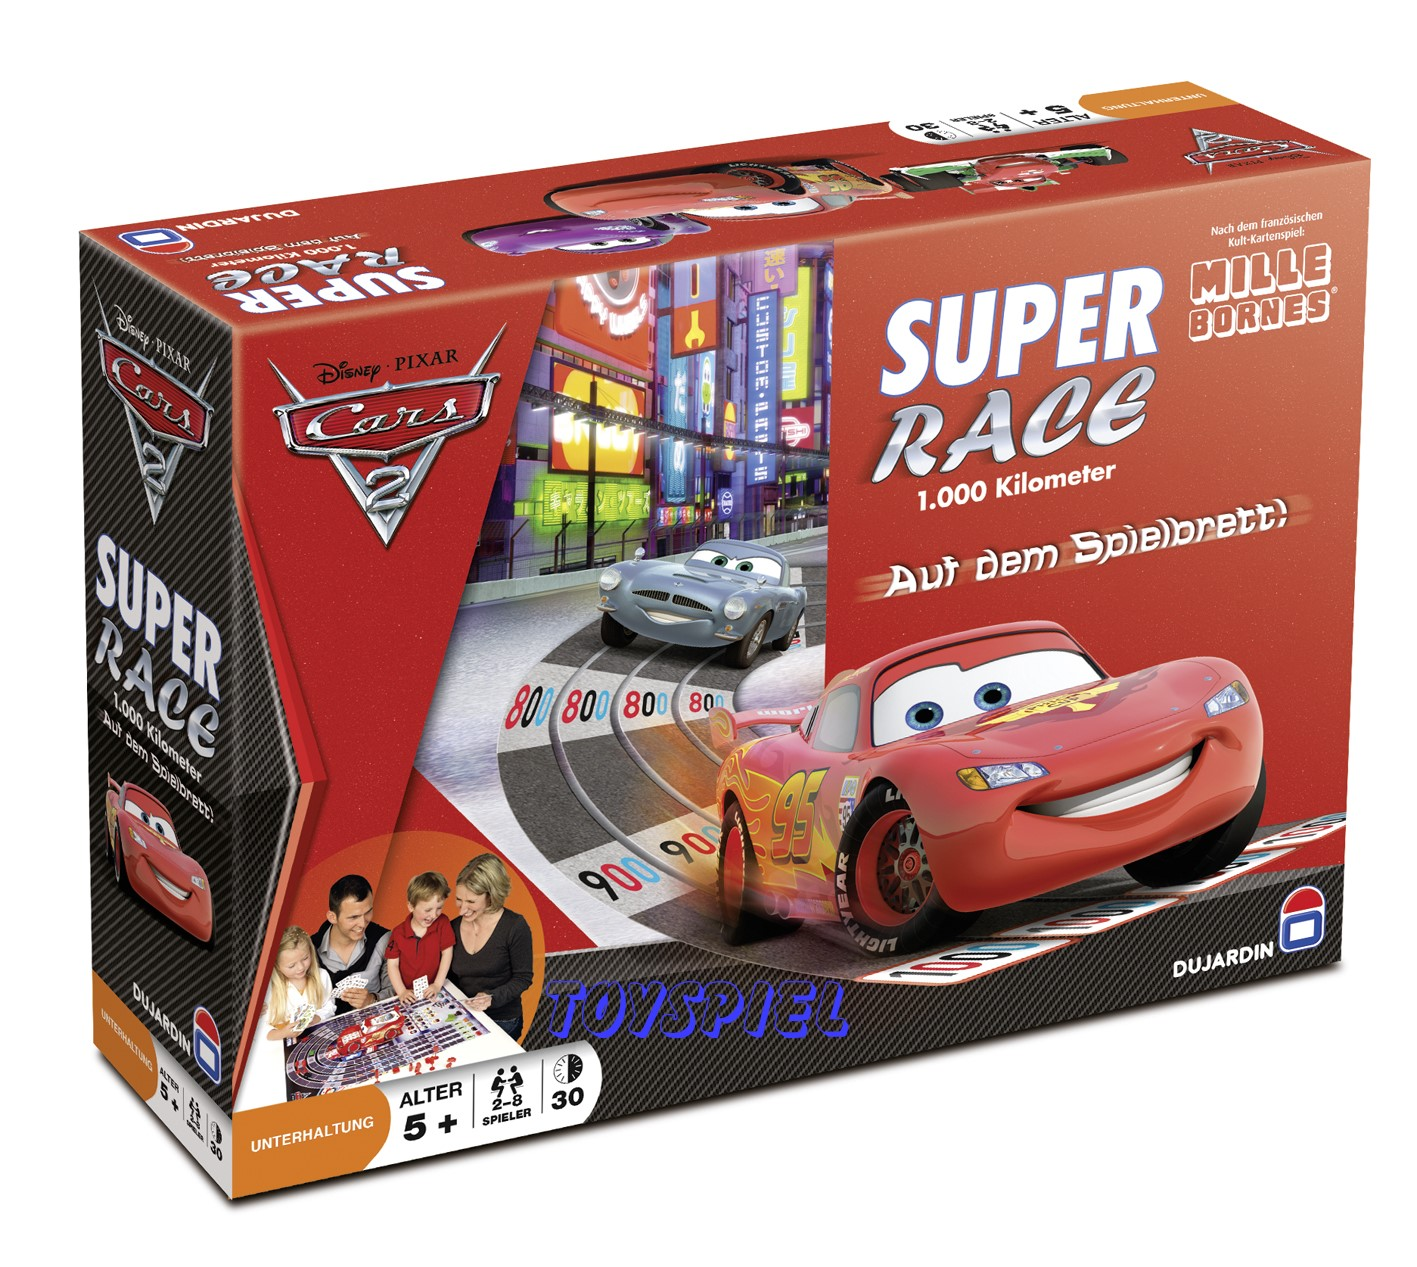 Supper race cars 2 1000km for Dujardin automobile